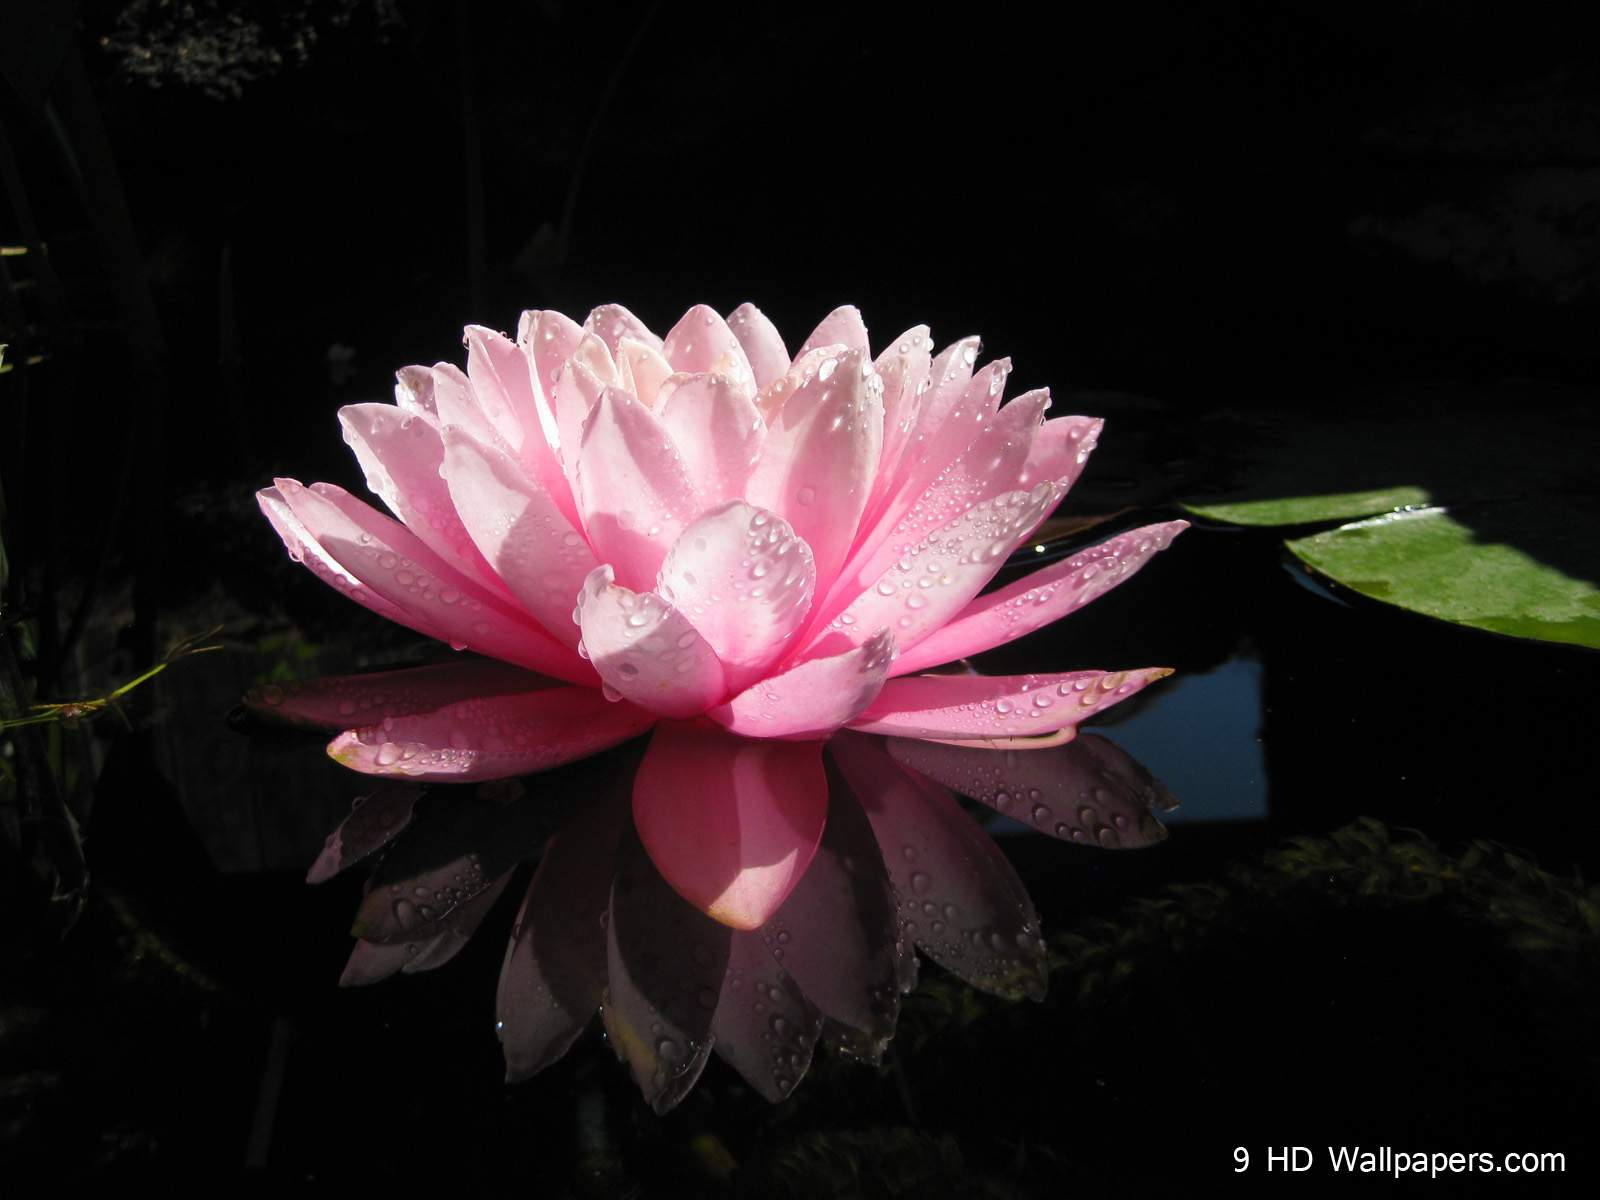 Lotus flower wallpapers wallpaper cave lotus flower hd wallpapers flowers images and photos full hd mightylinksfo